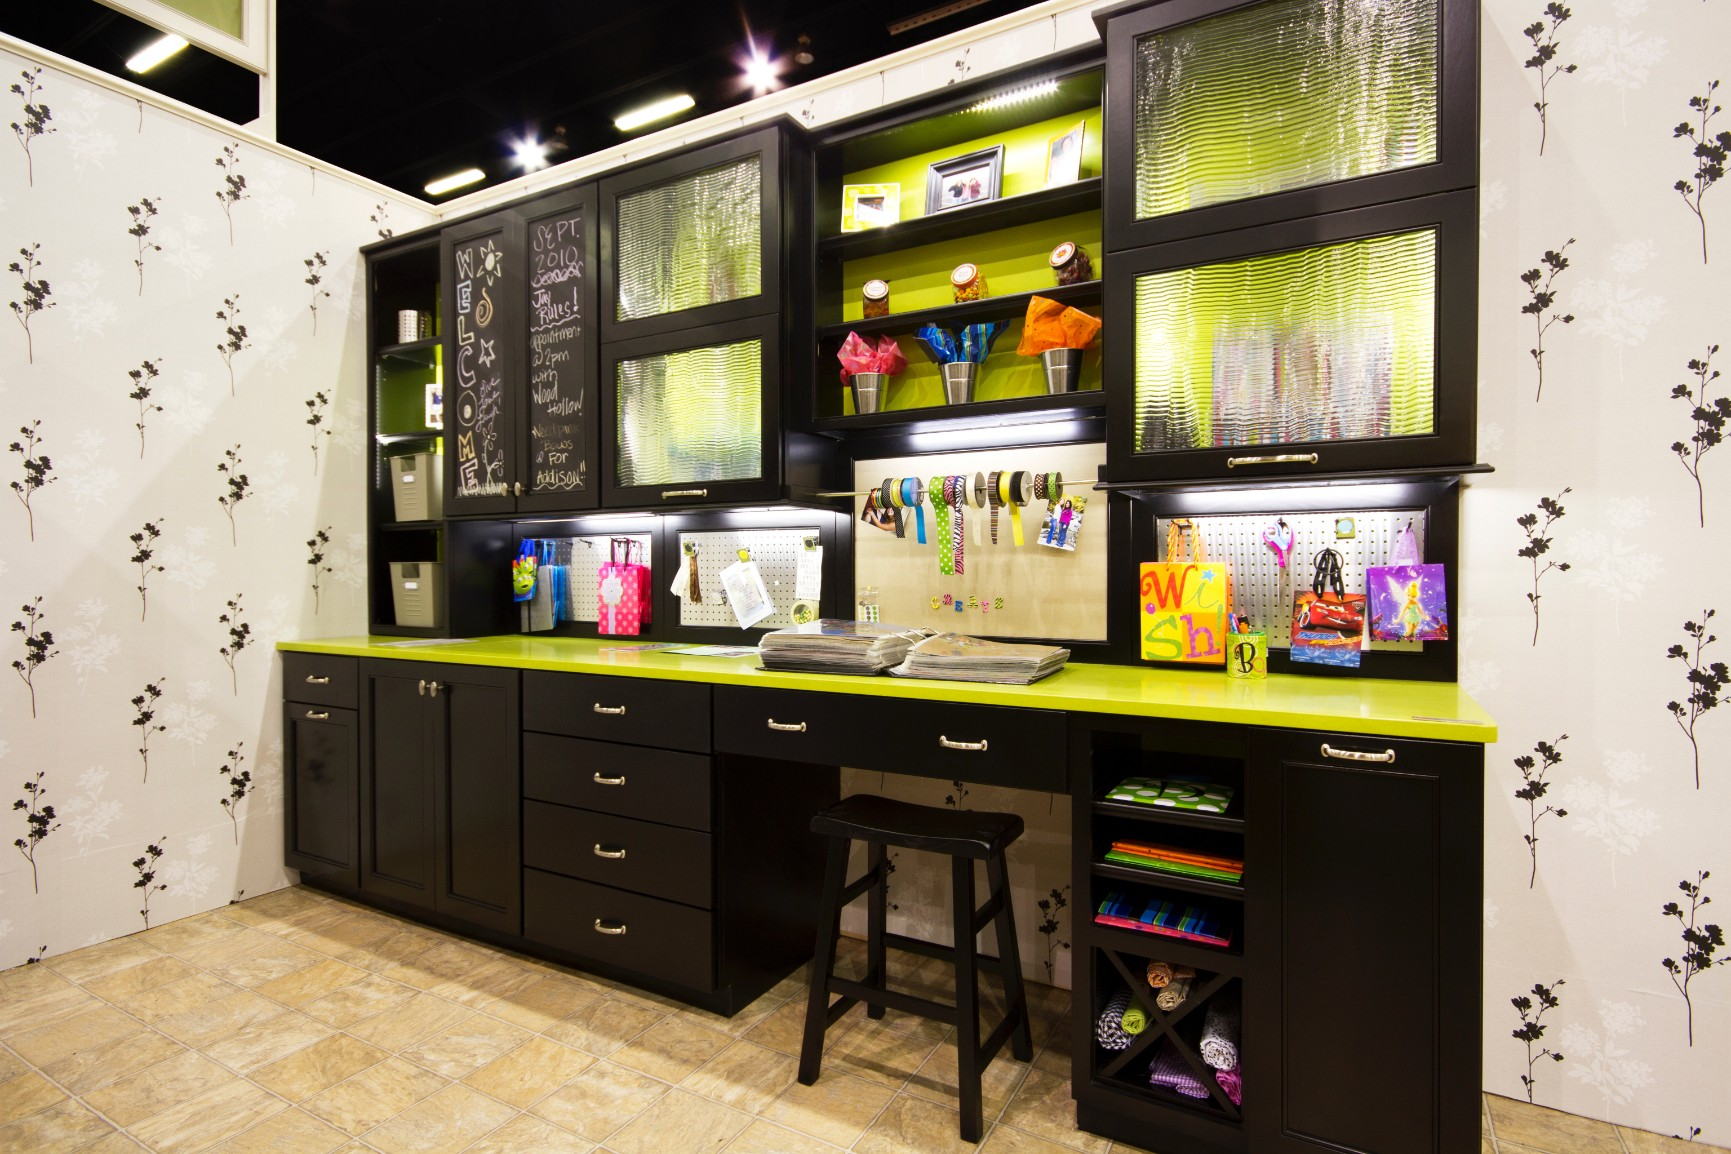 Wood Hollow Cabinetsu0027 Mudroom And Laundry Rooms Are Built With You And Your  Family In Mind. We Design Each Room To Be Stylish While Maintaining Maximum  ...